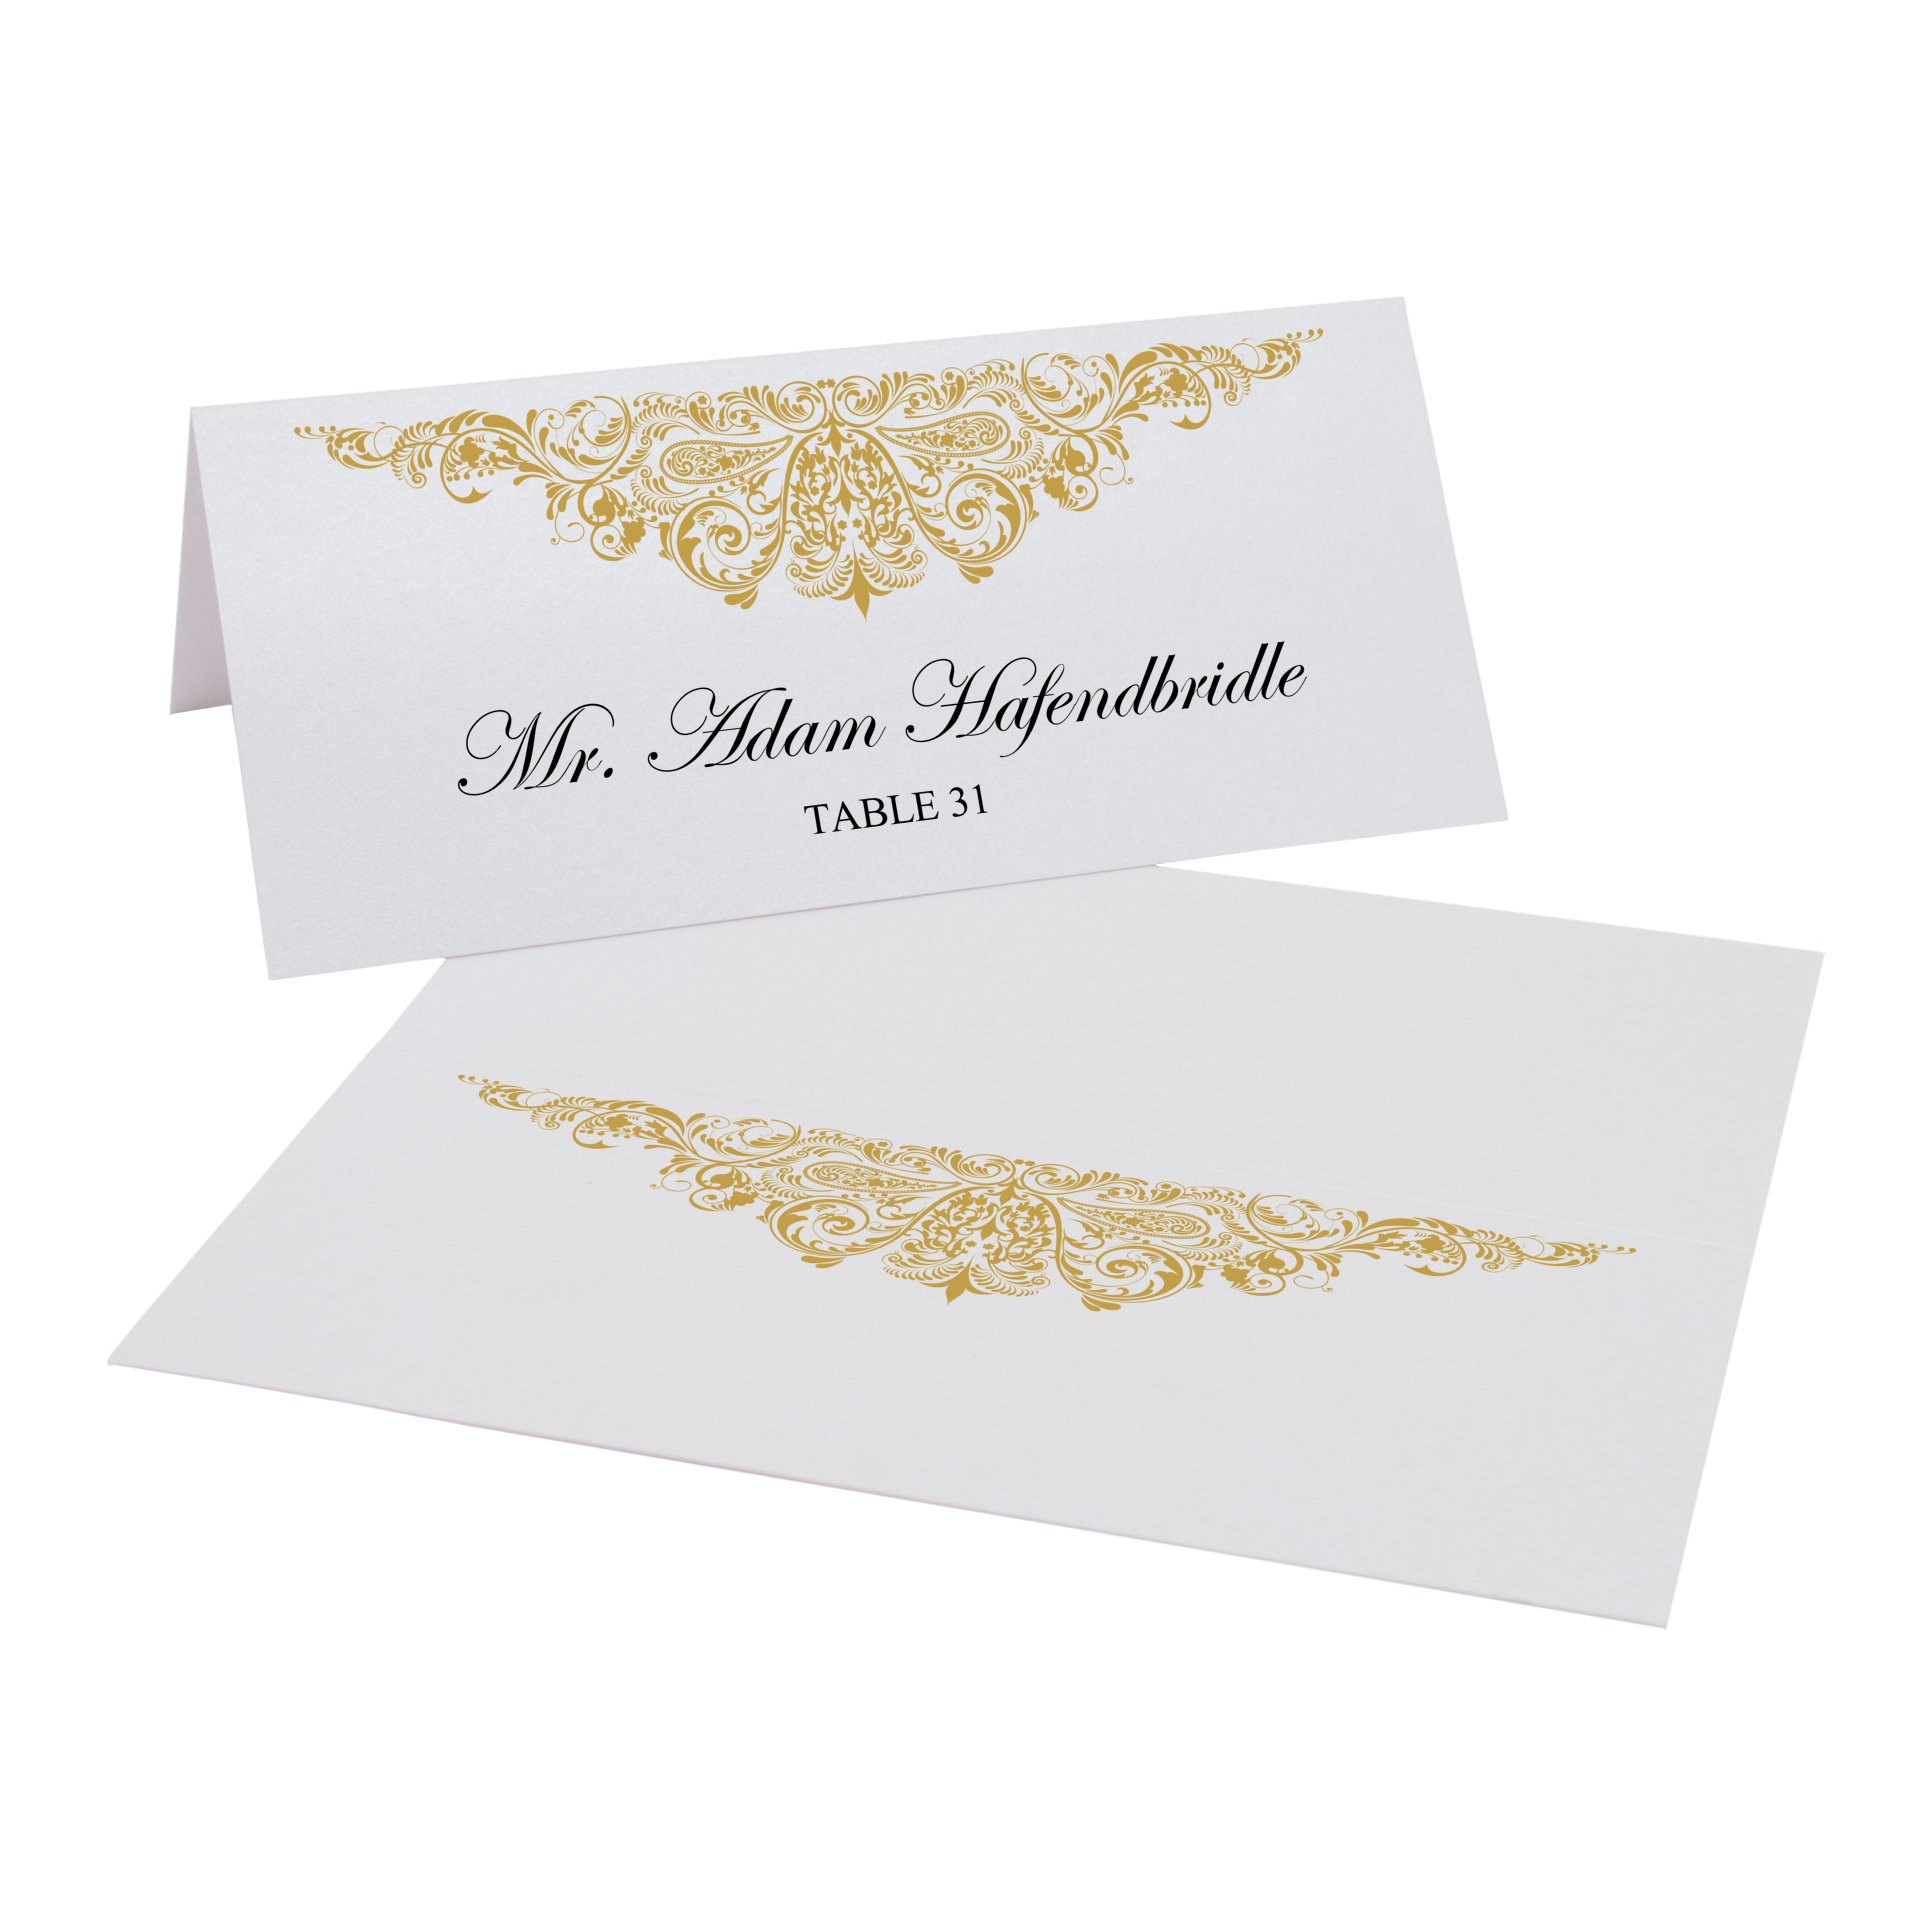 Documents and Designs Paisley Easy Print Place Cards, Gold, Set of 150 (25 Sheets)